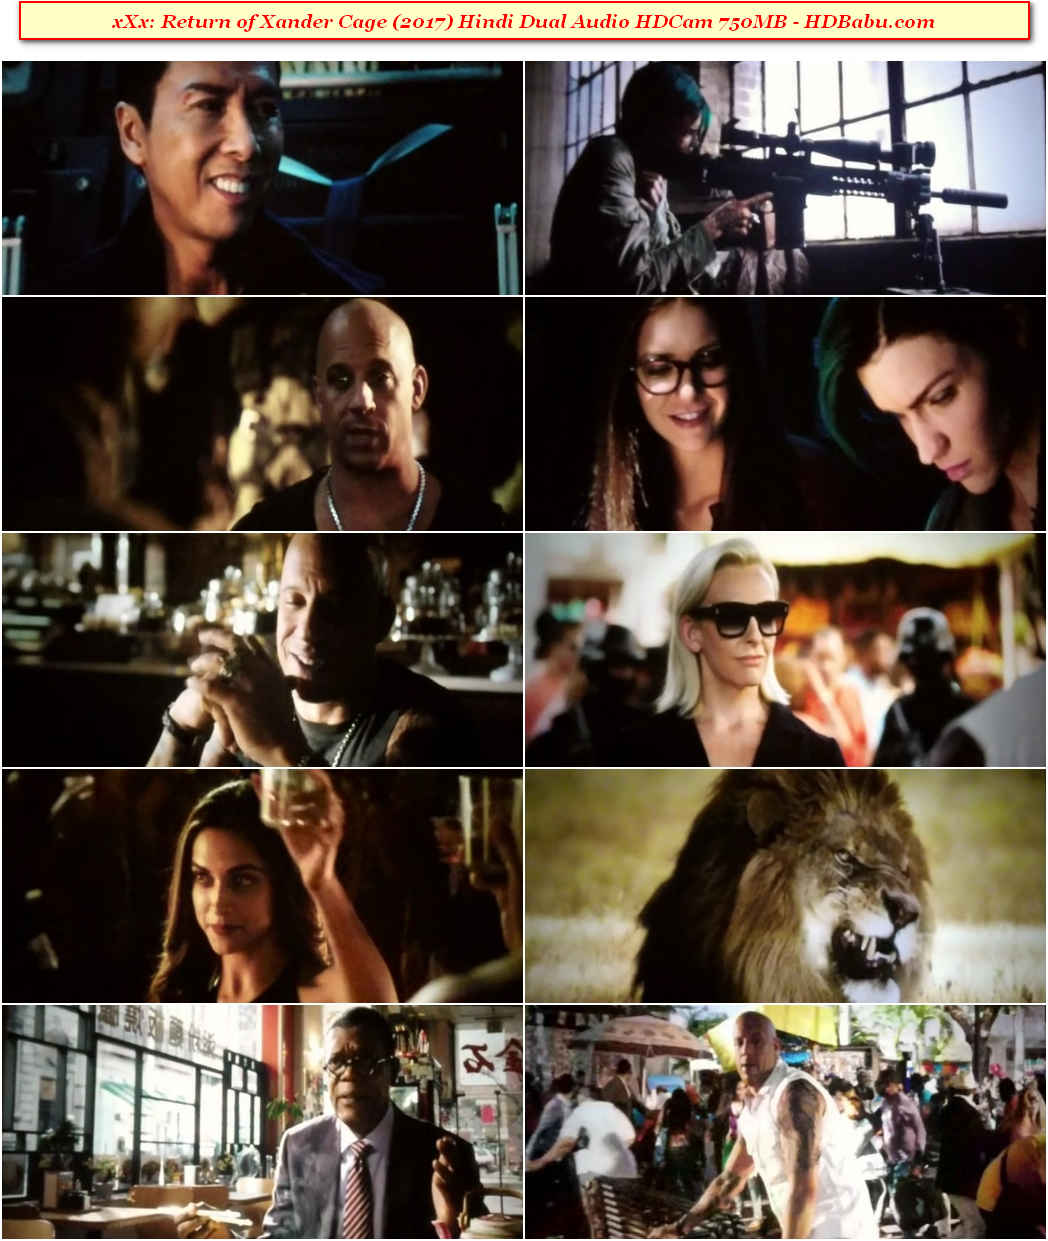 xXx Return of Xander Cage Full Movie Download, xXx Return of Xander Cage Hindi Dual Audio HDCam Full Movie Download Free Full HD